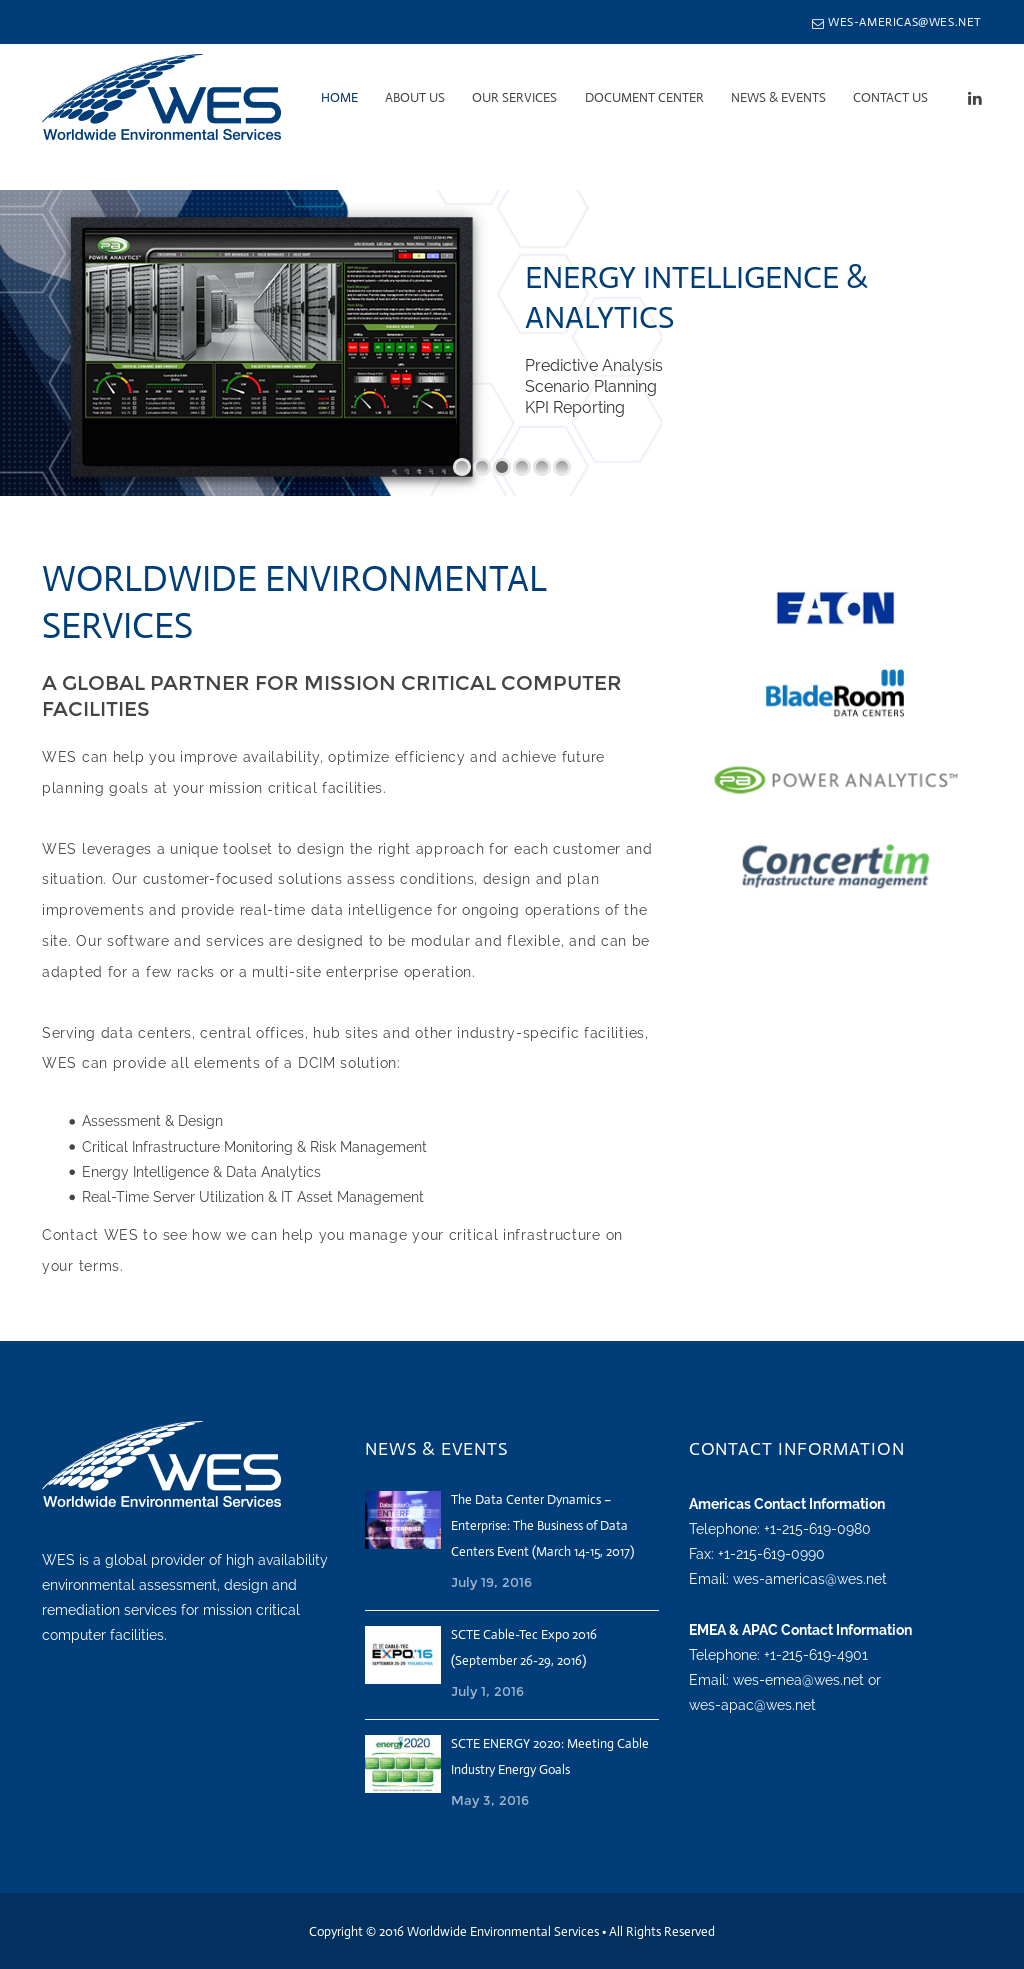 Wes Emea Competitors, Revenue and Employees - Owler Company Profile